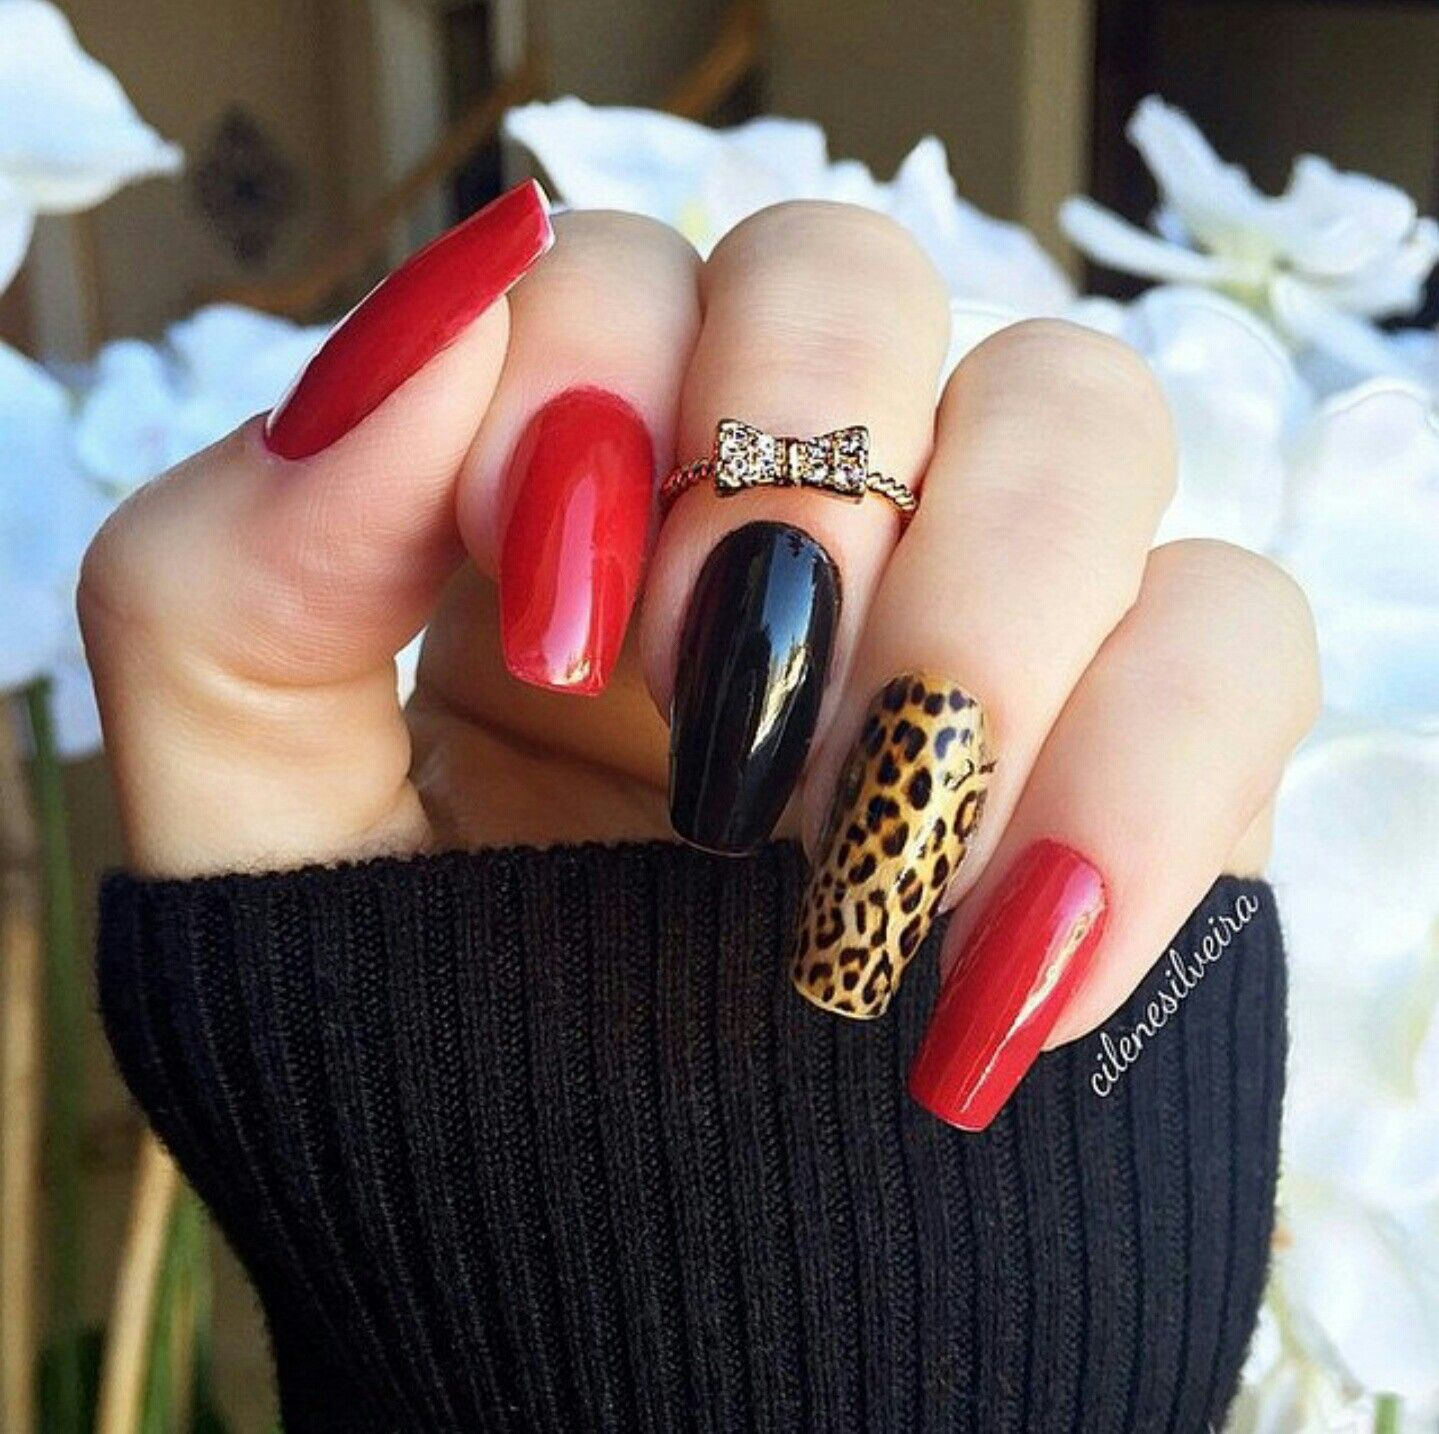 Photo of Red & black nails, leopard print nail art accent